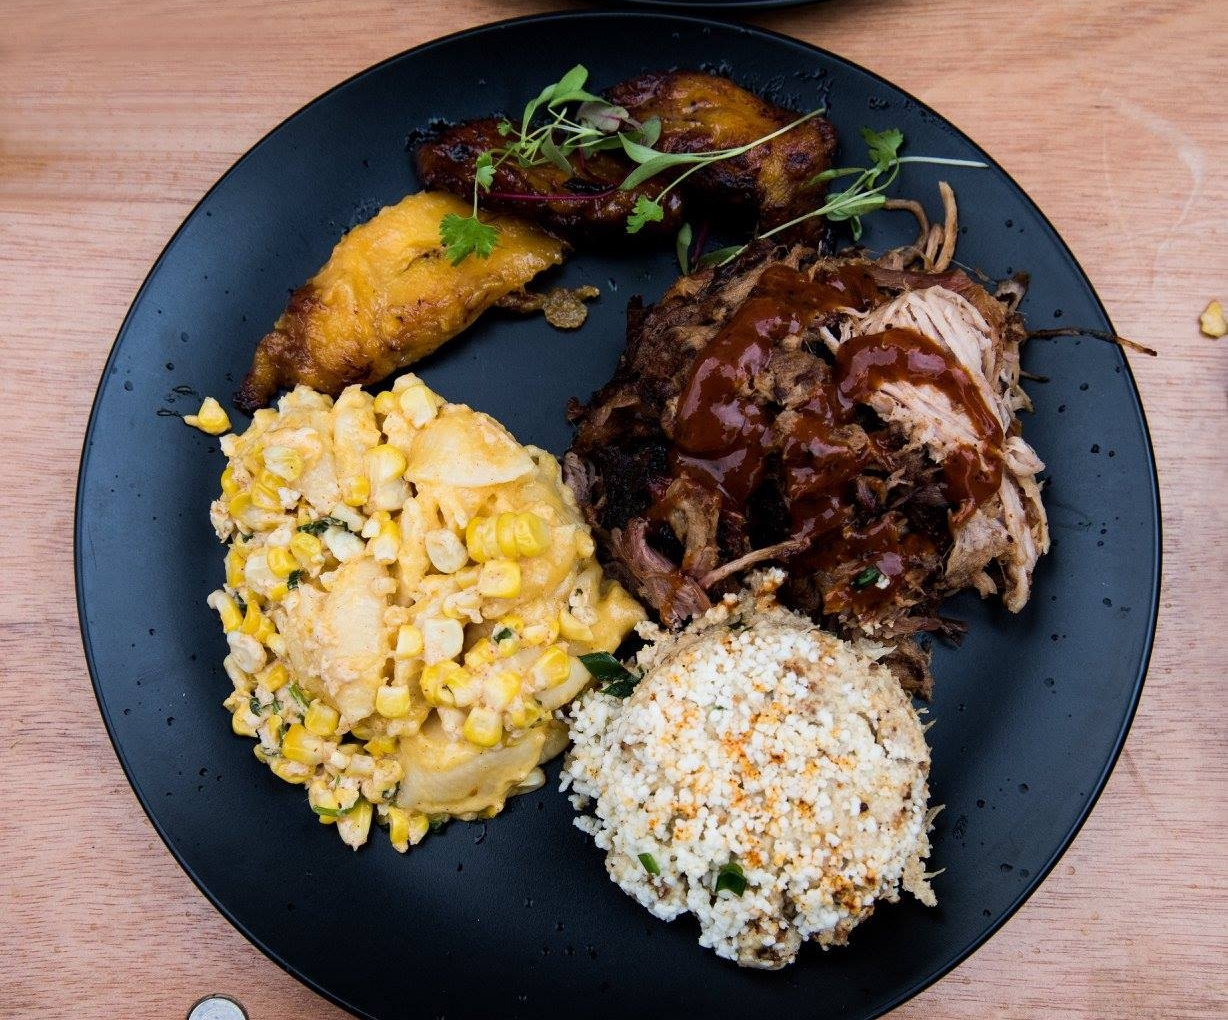 No one went home hungry after this delightful meal by  Pig Floyd's : Smoked Pork, Cauliflower Mash, Mexican Style Street Corn, & Plantains.